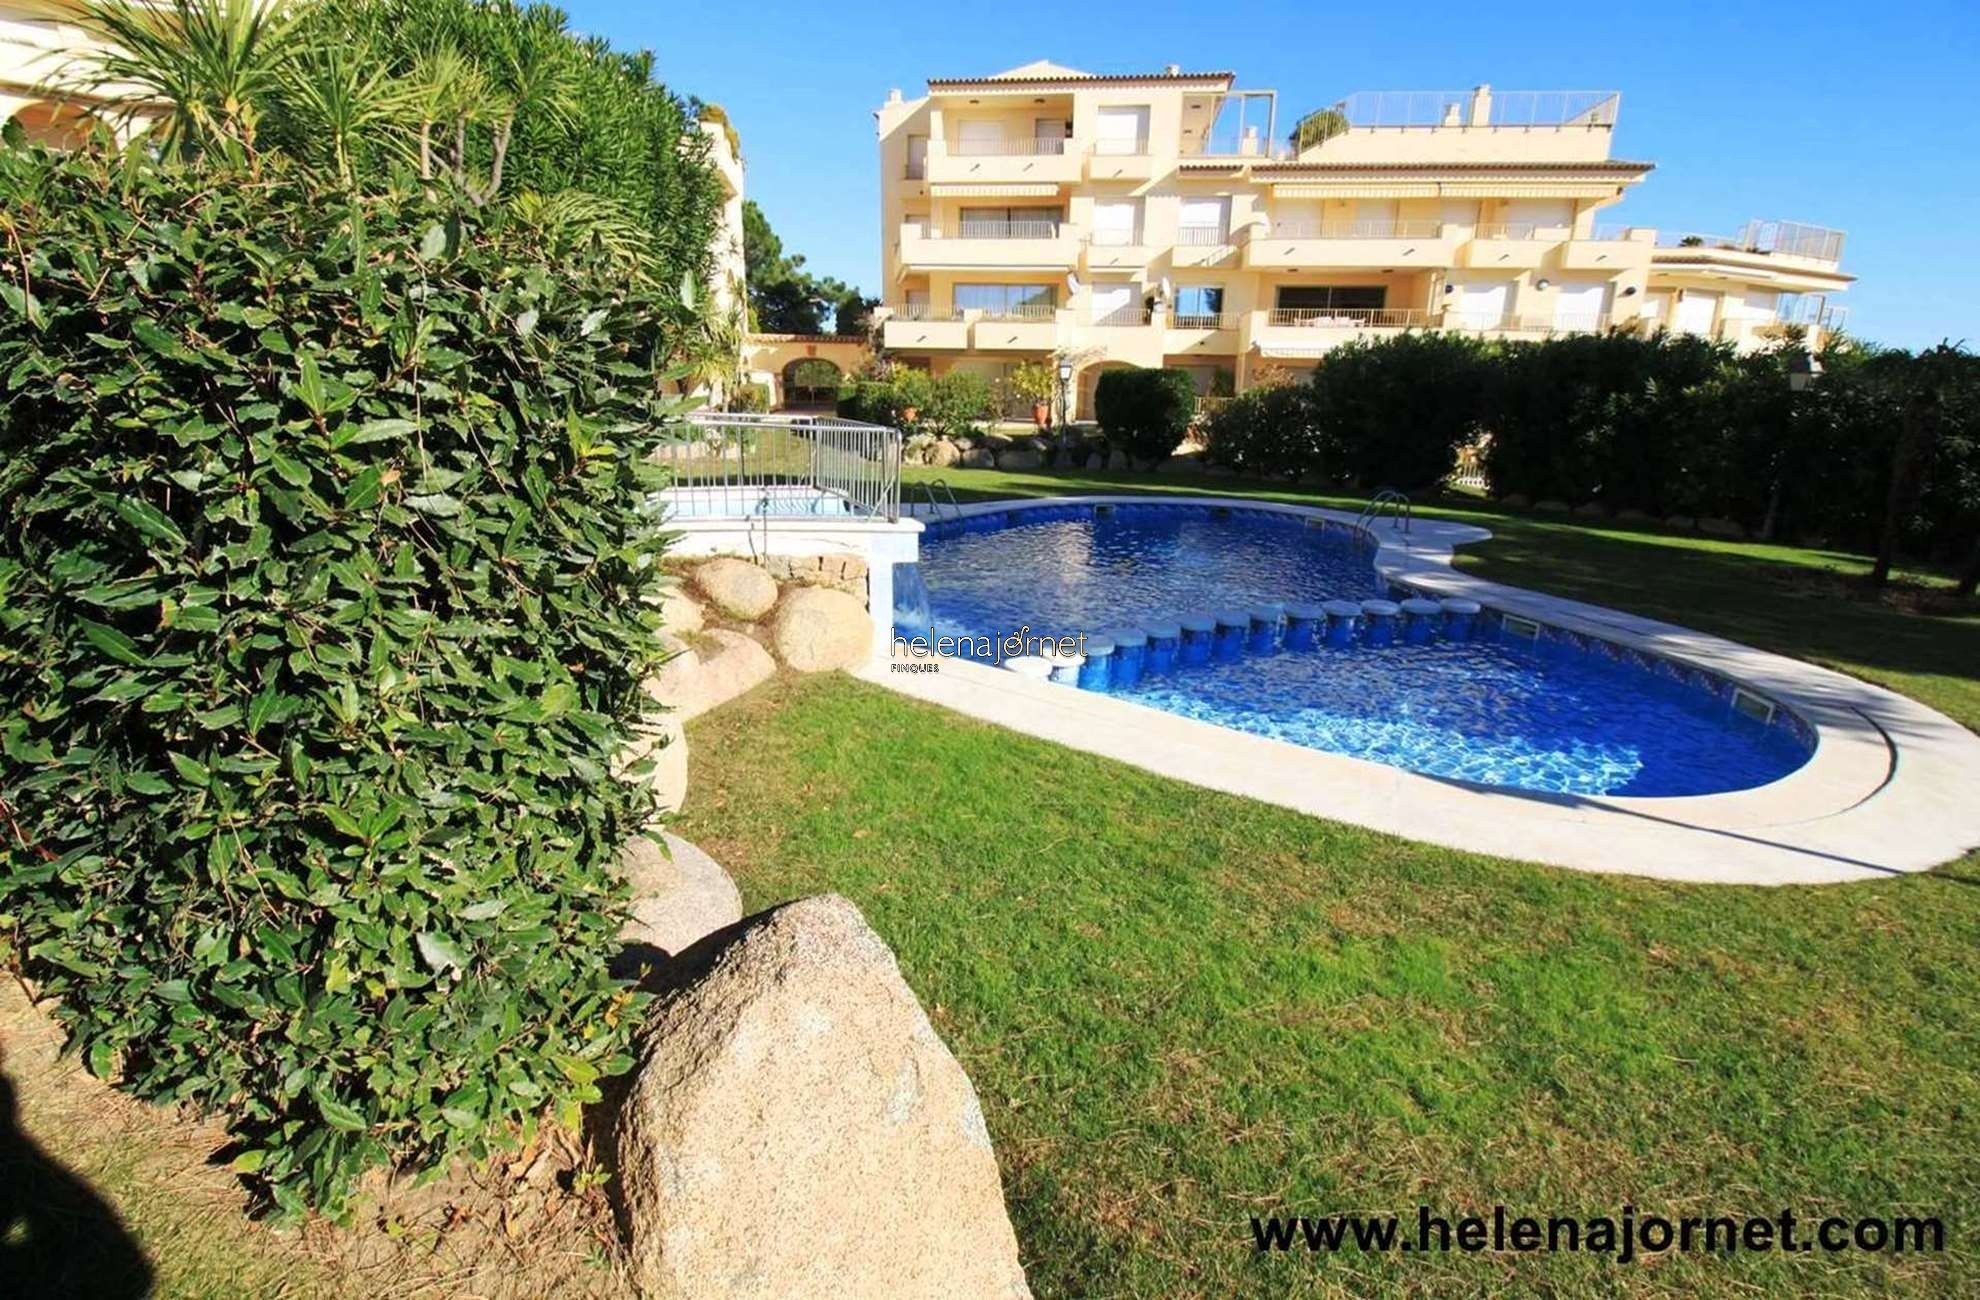 Apartment with terrace, WIFI, sea views and community pool - 70051 Las Velas